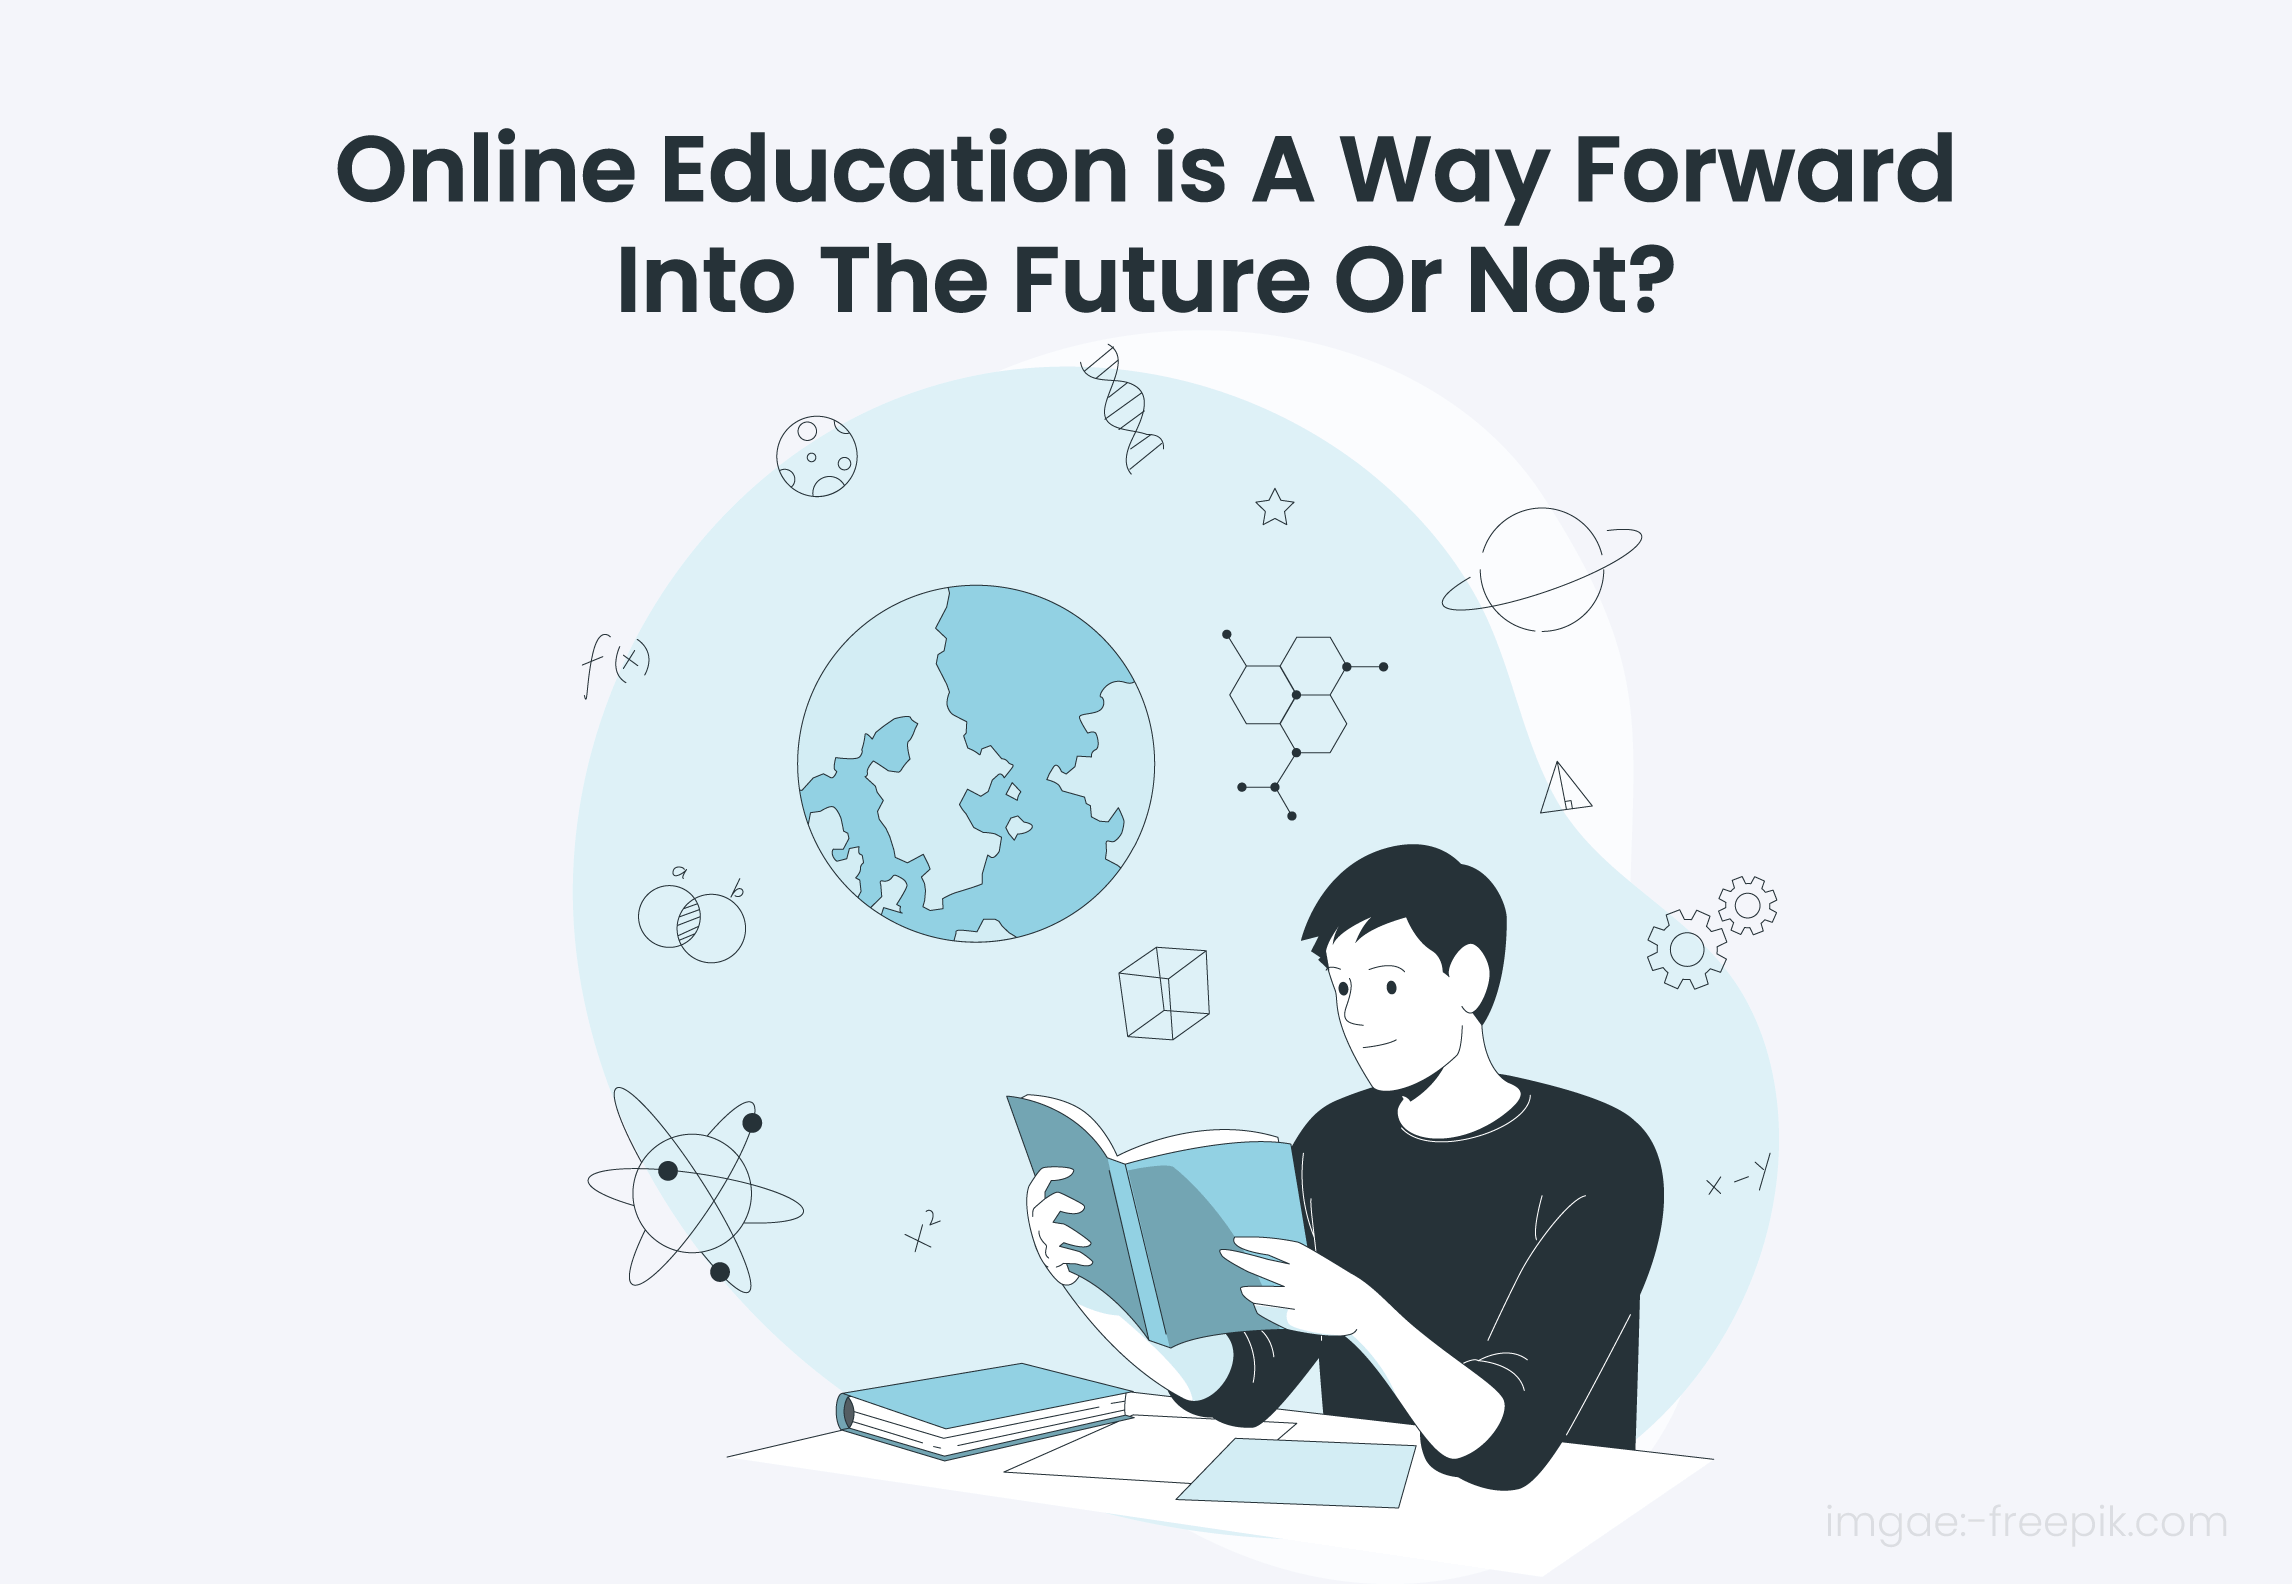 Online Education is A Way Forward Into The Future Or Not?